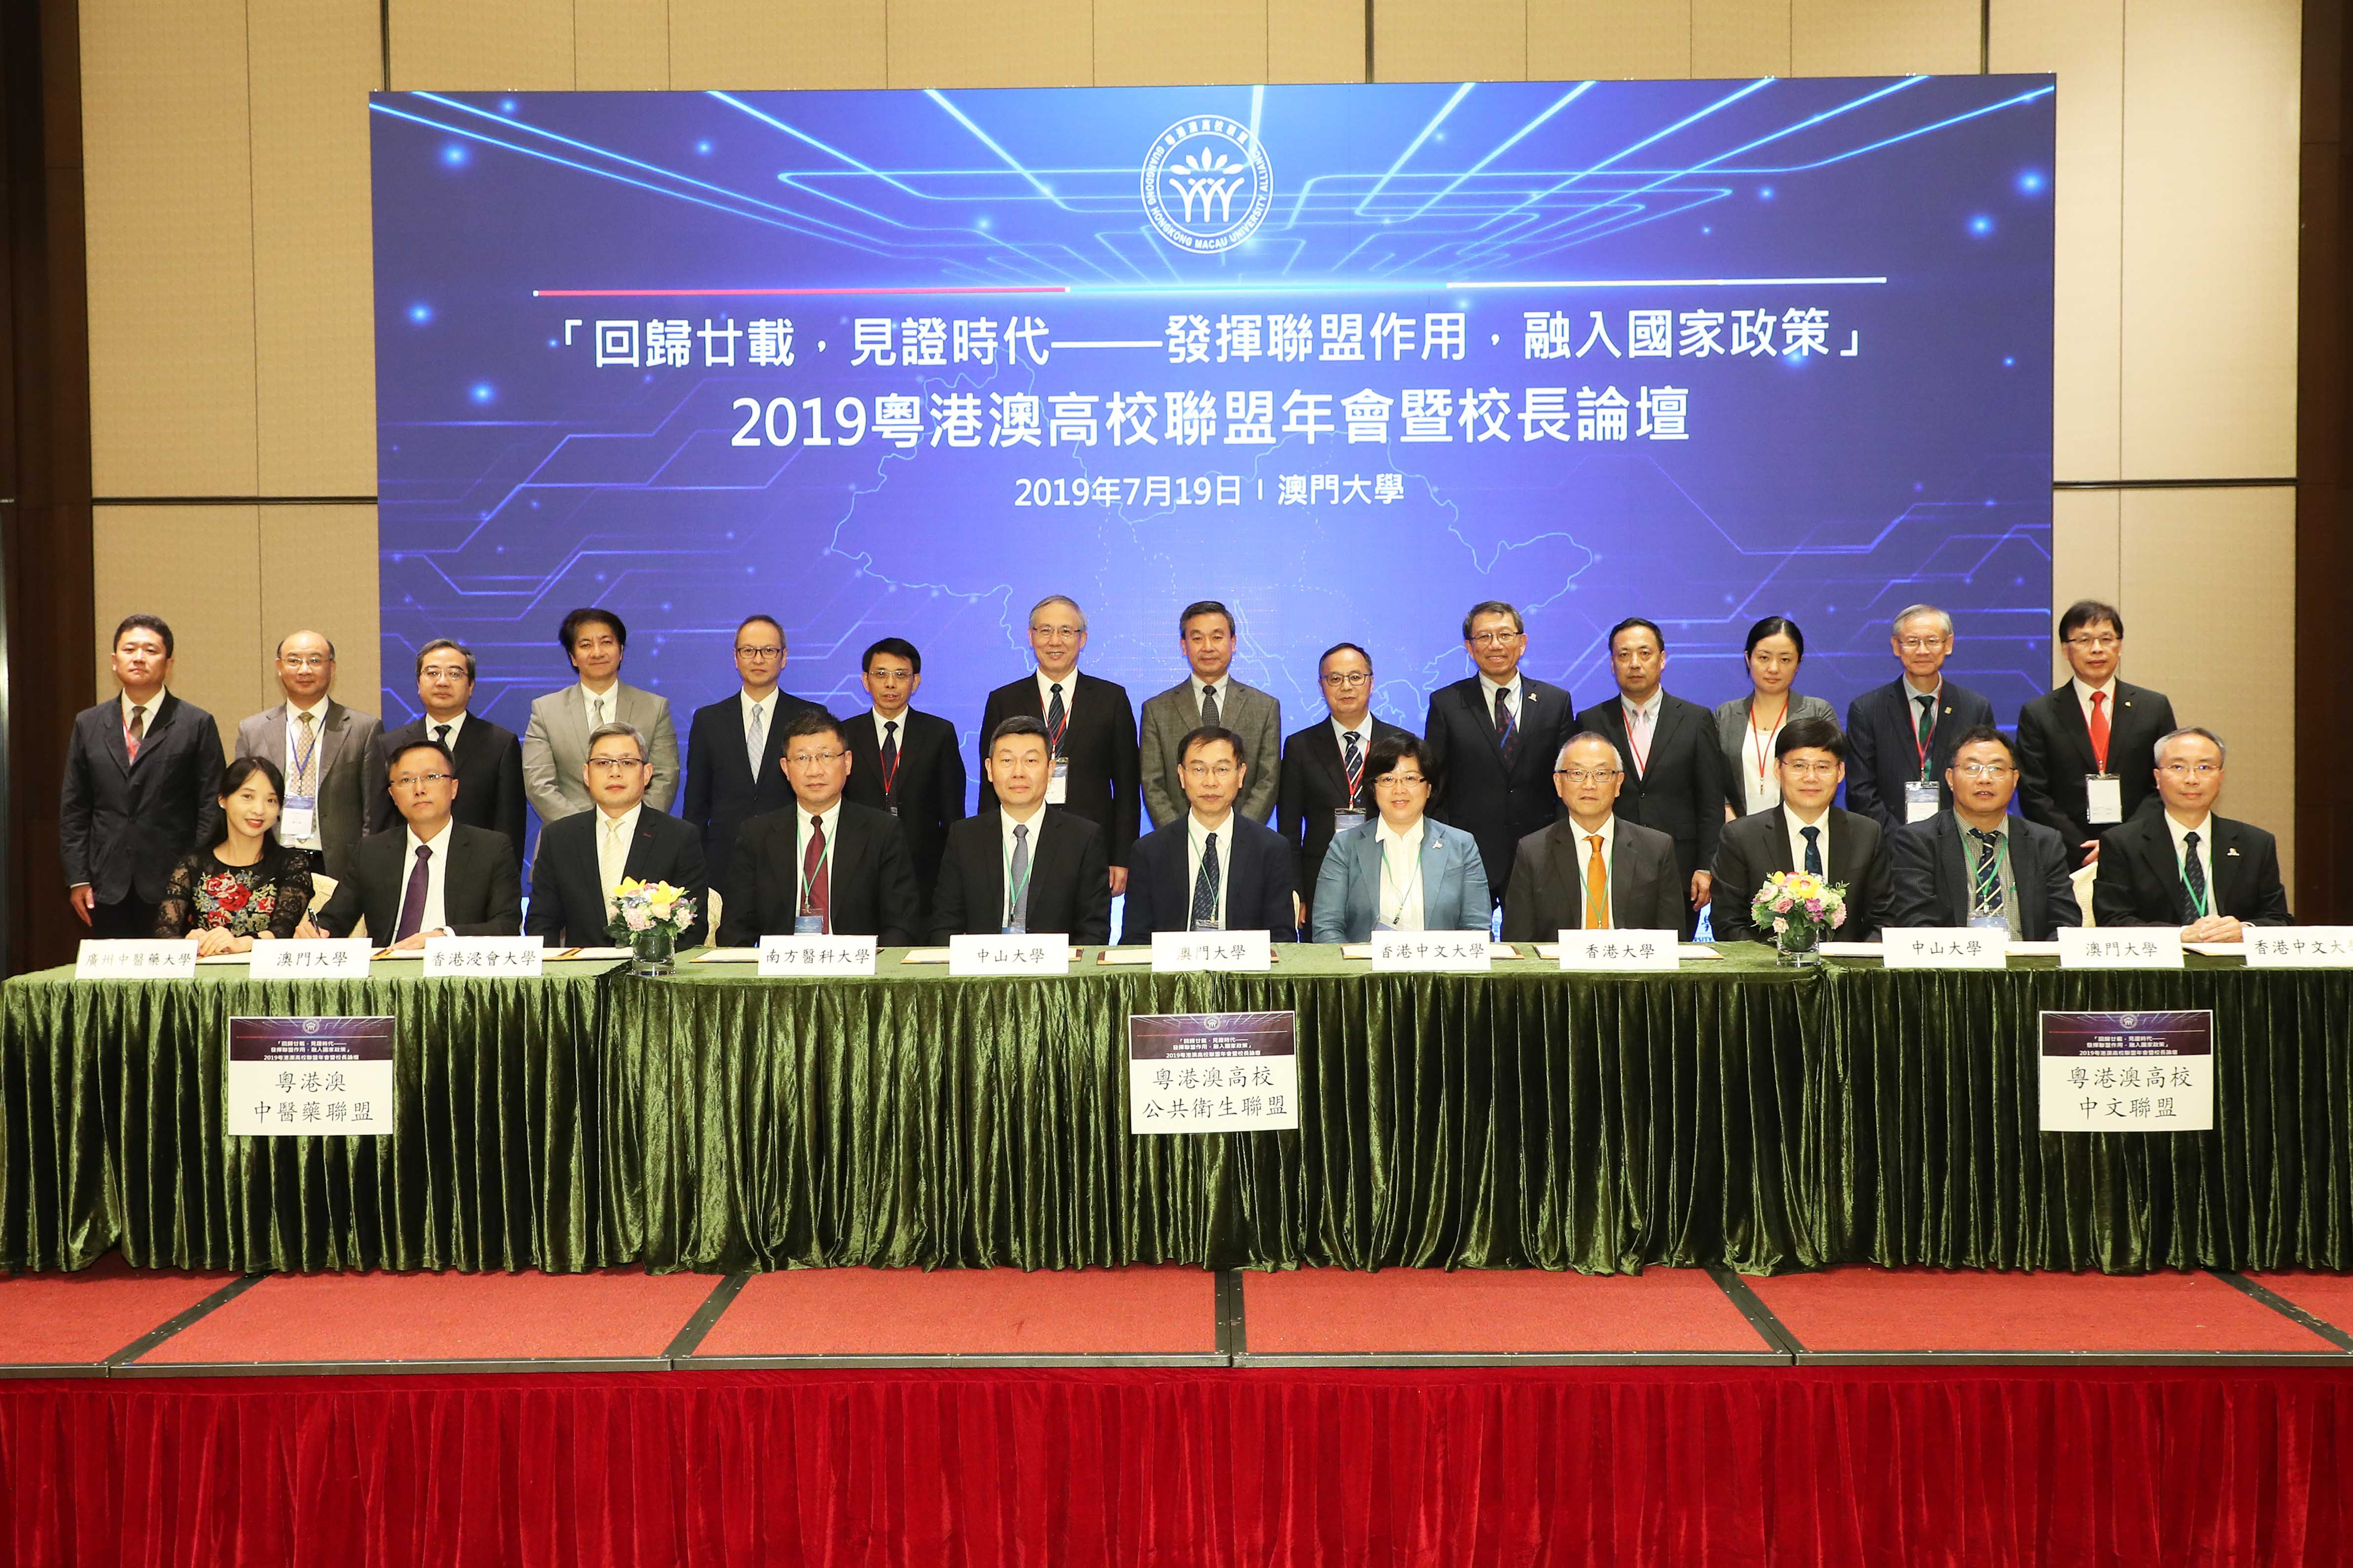 The Guangdong-Hong Kong-Macao University Alliance Annual Meeting and Presidents' Forum 2019 was held at UM